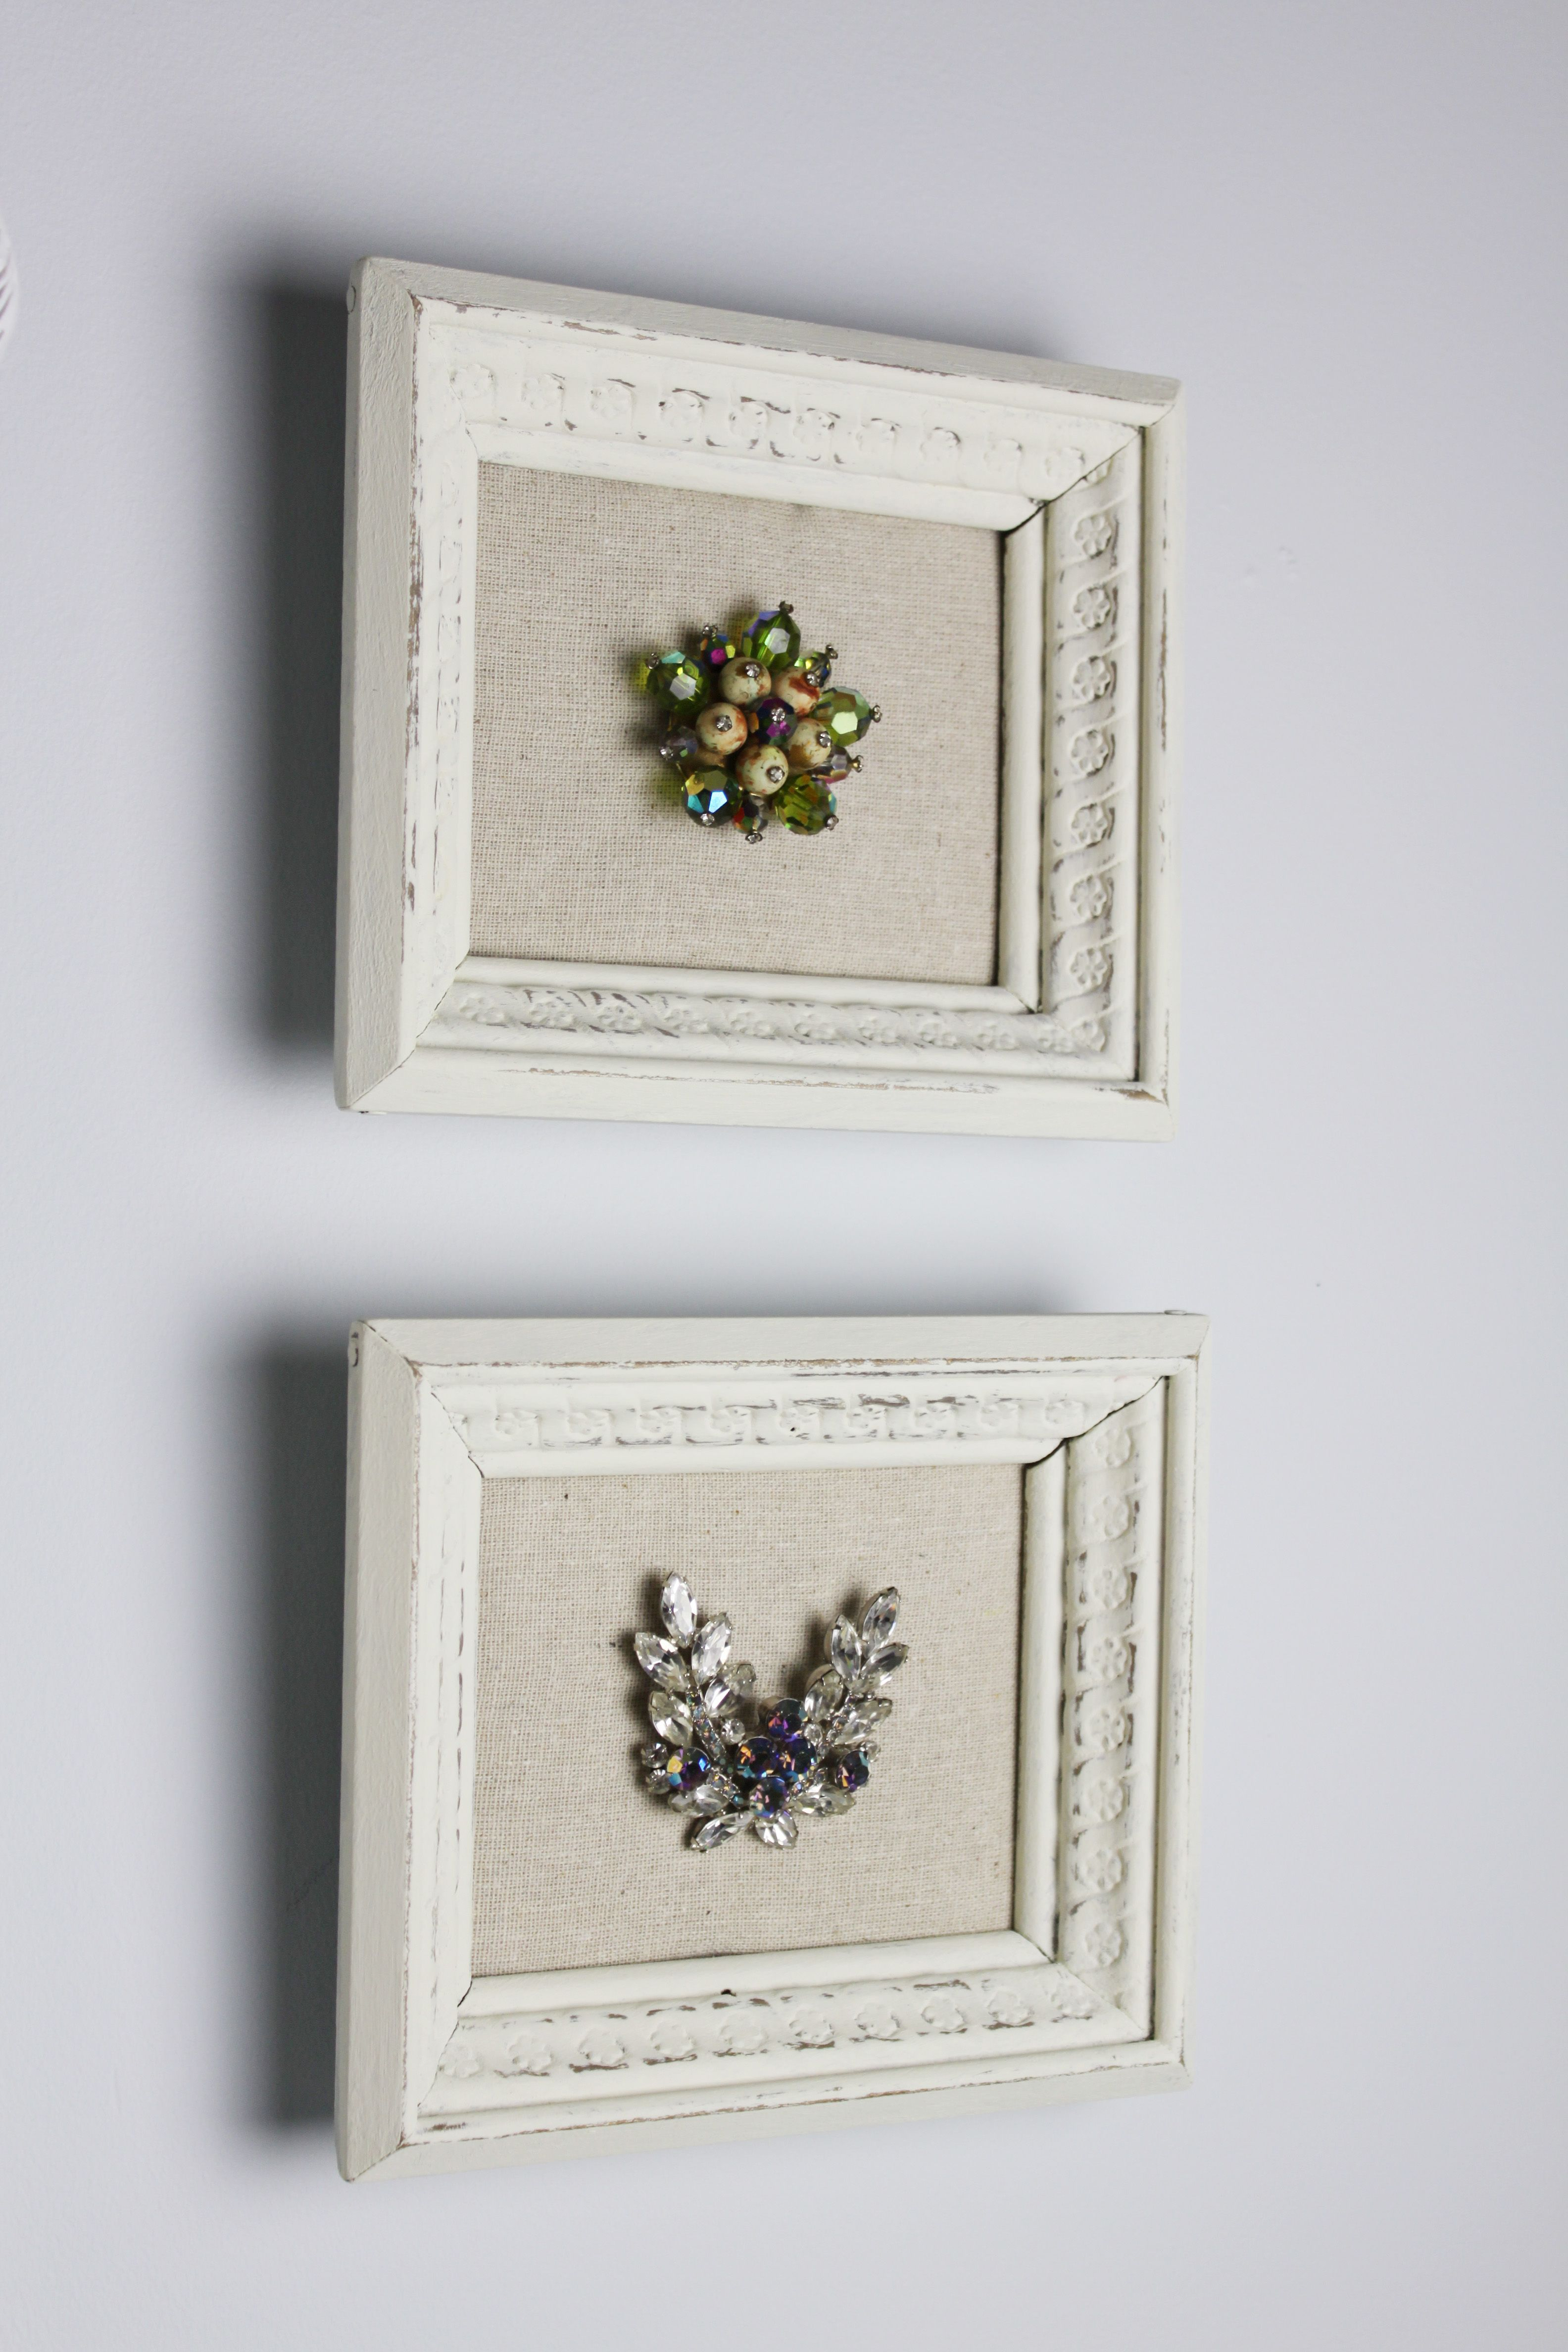 Real Inspired: DIY Framed Jewelry … | mermaid tail from jewelry ...